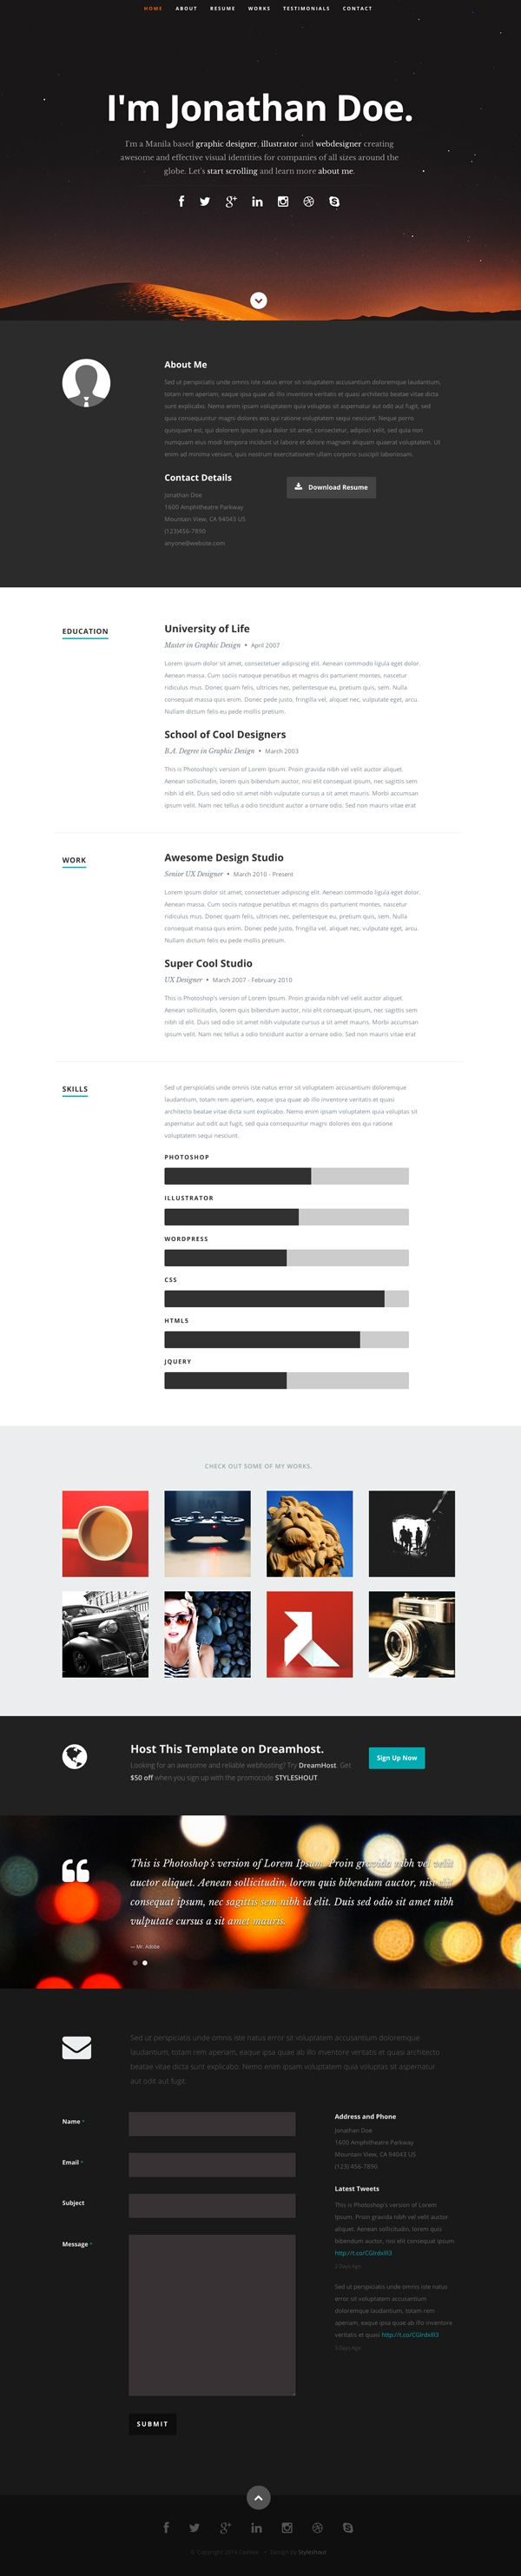 Free One Page Ceevee Responsive HTML Template | Free download ...